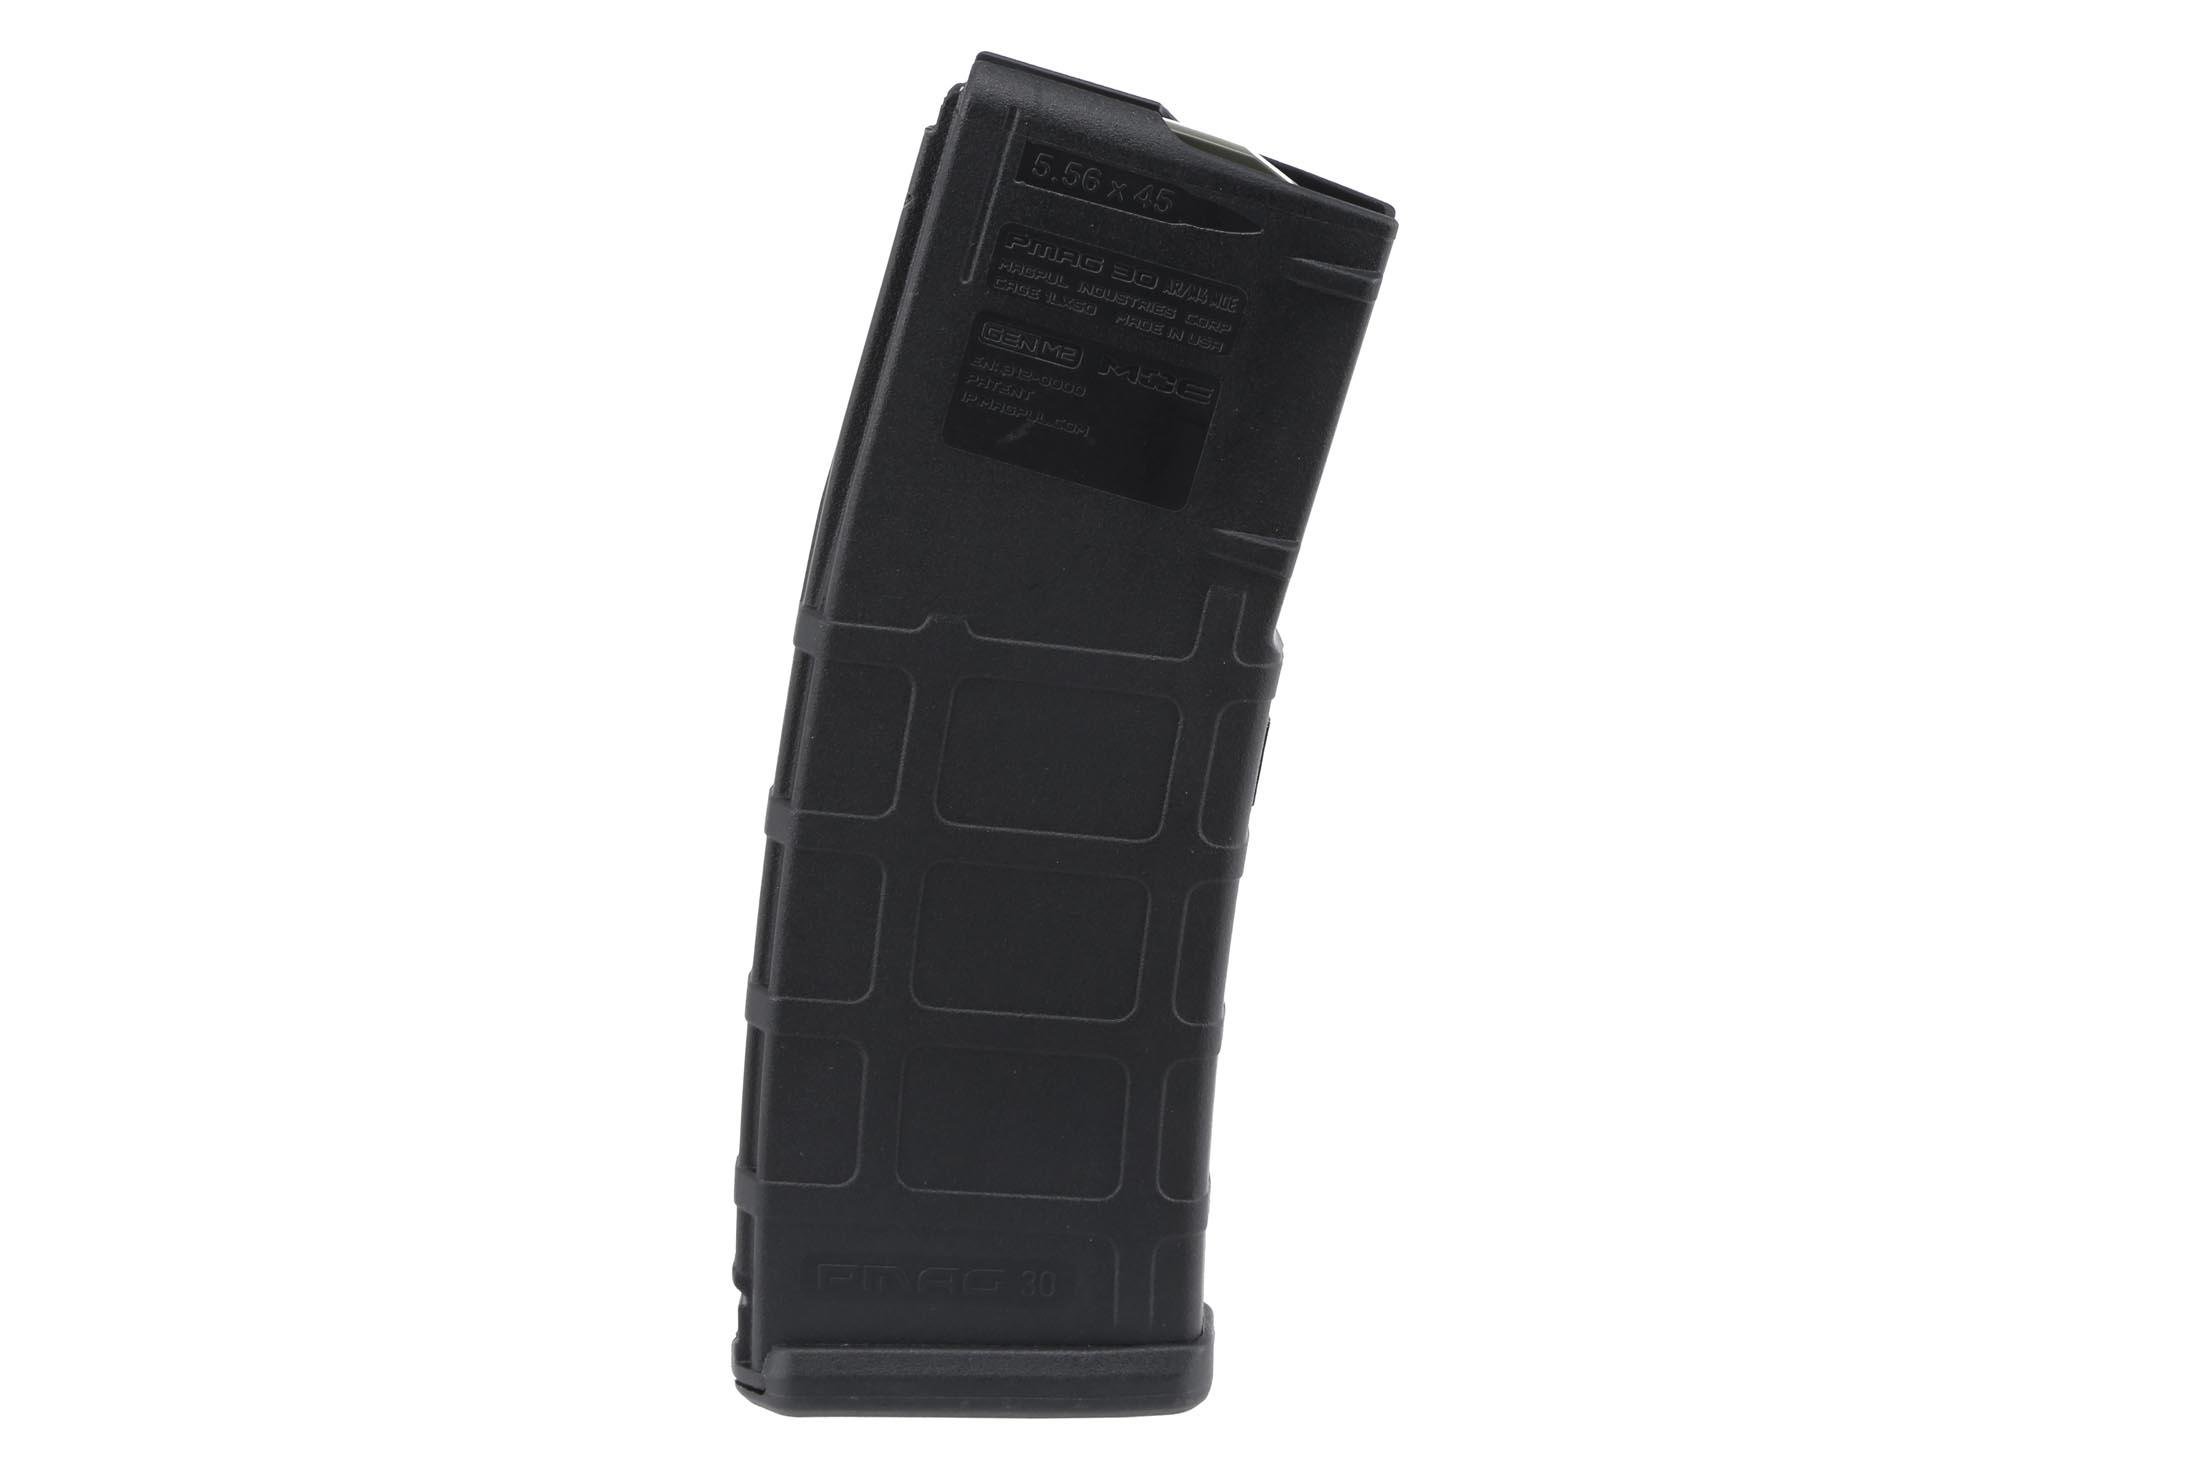 The PMAG 30 Magpul 5.56 magazine is easy to disassemble for cleaning or maintenance